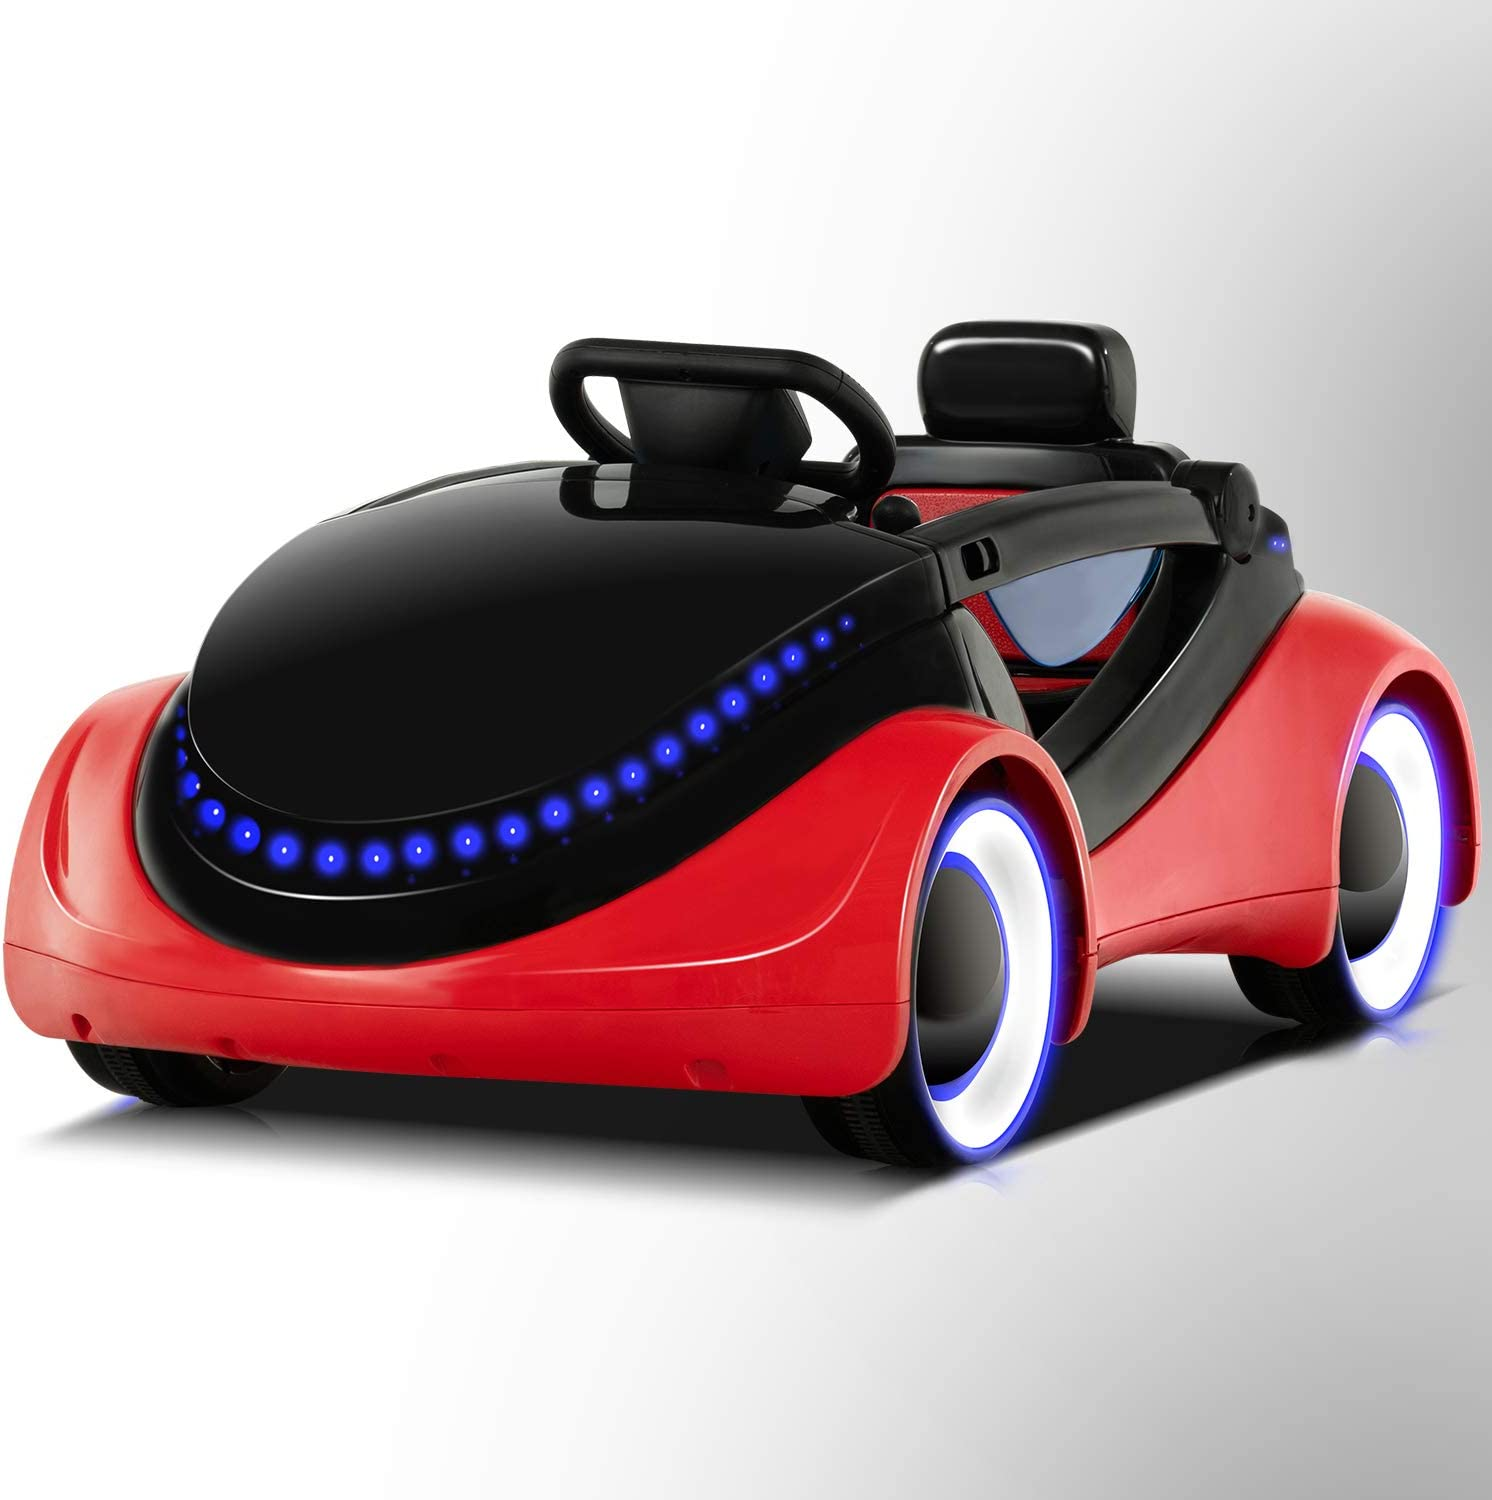 Music Uenjoy Electric Kids Ride On Cars Battery Motorized Vehicles with Remote Control Safety Lock Red Story Playing LED Lights